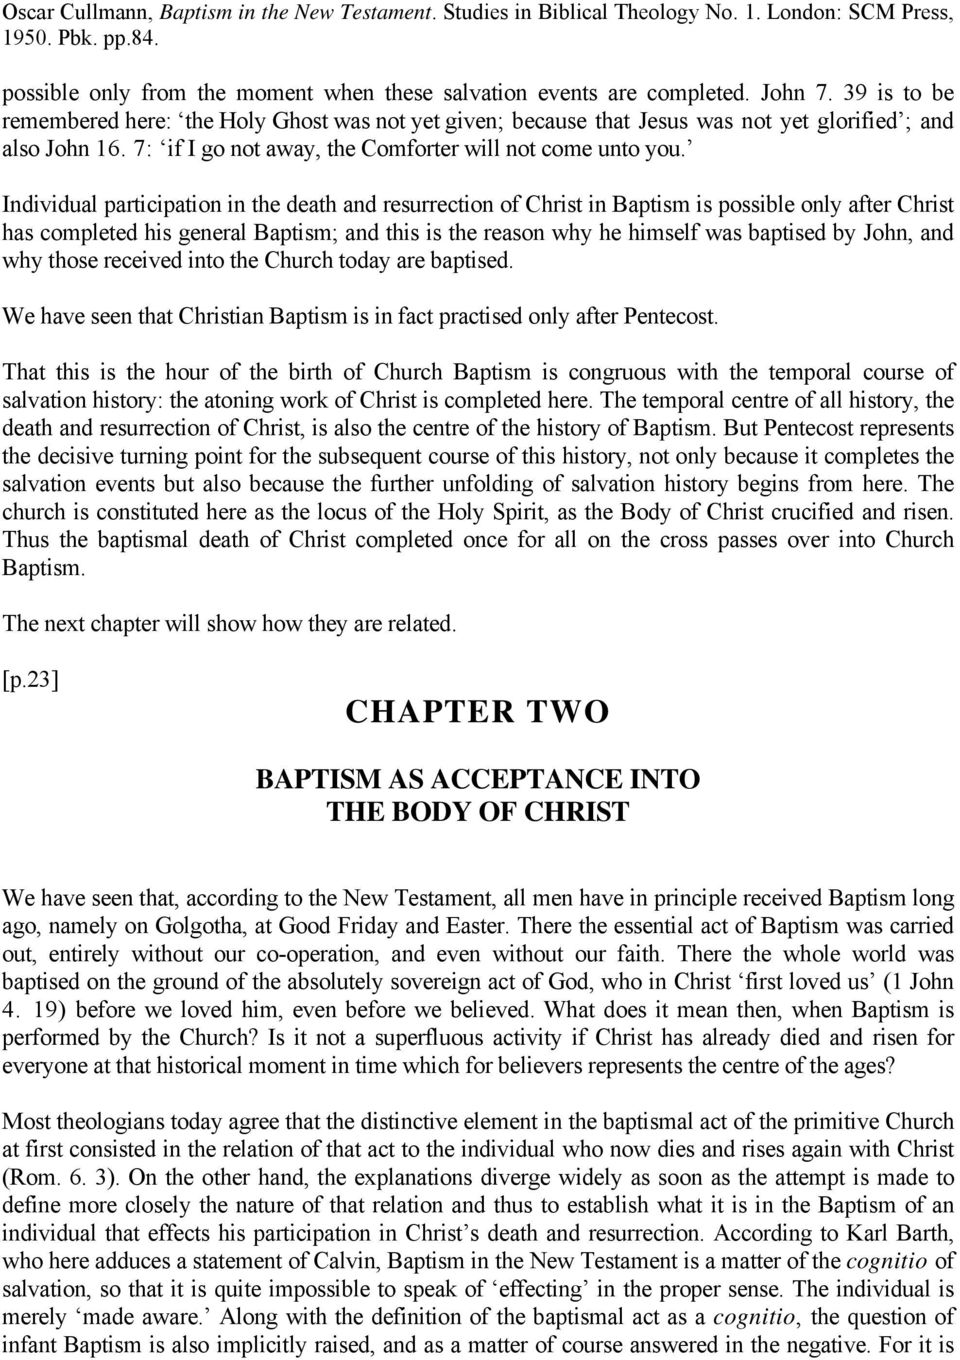 Individual participation in the death and resurrection of Christ in Baptism is possible only after Christ has completed his general Baptism; and this is the reason why he himself was baptised by